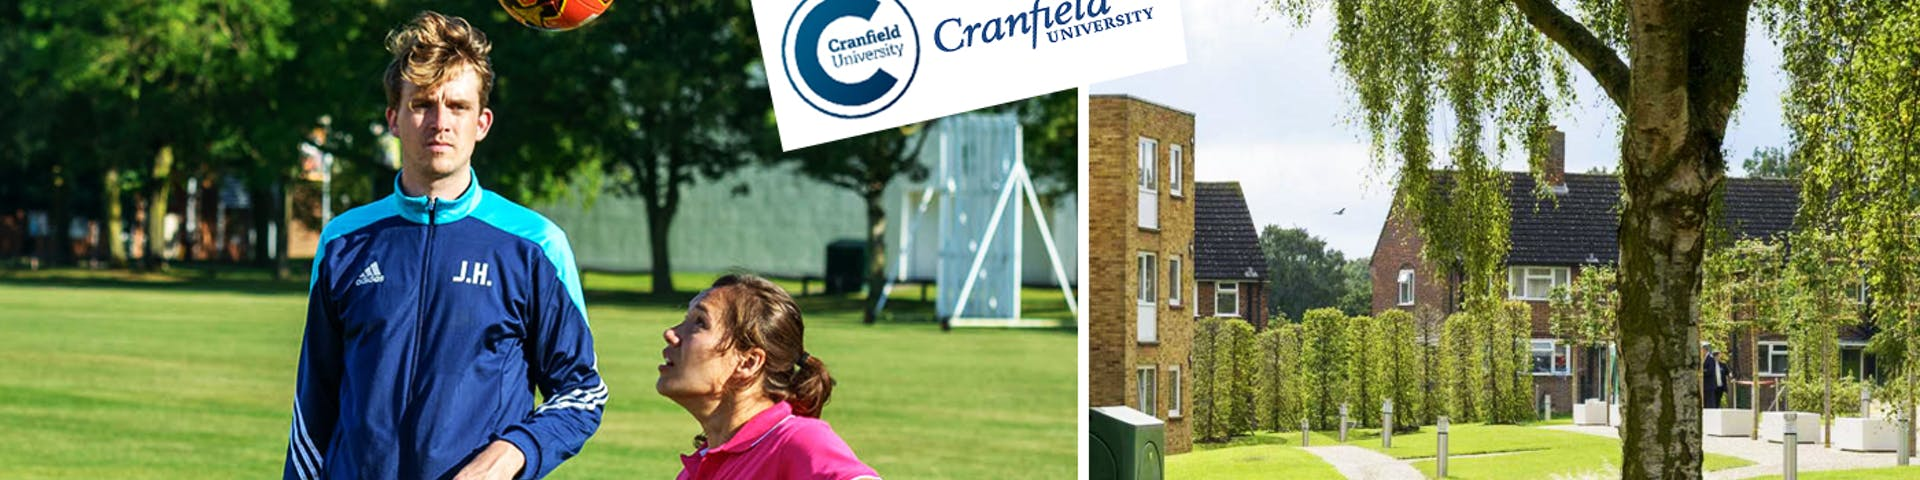 Advanced Materials, MSc, PgDip, PgCert - at Cranfield University